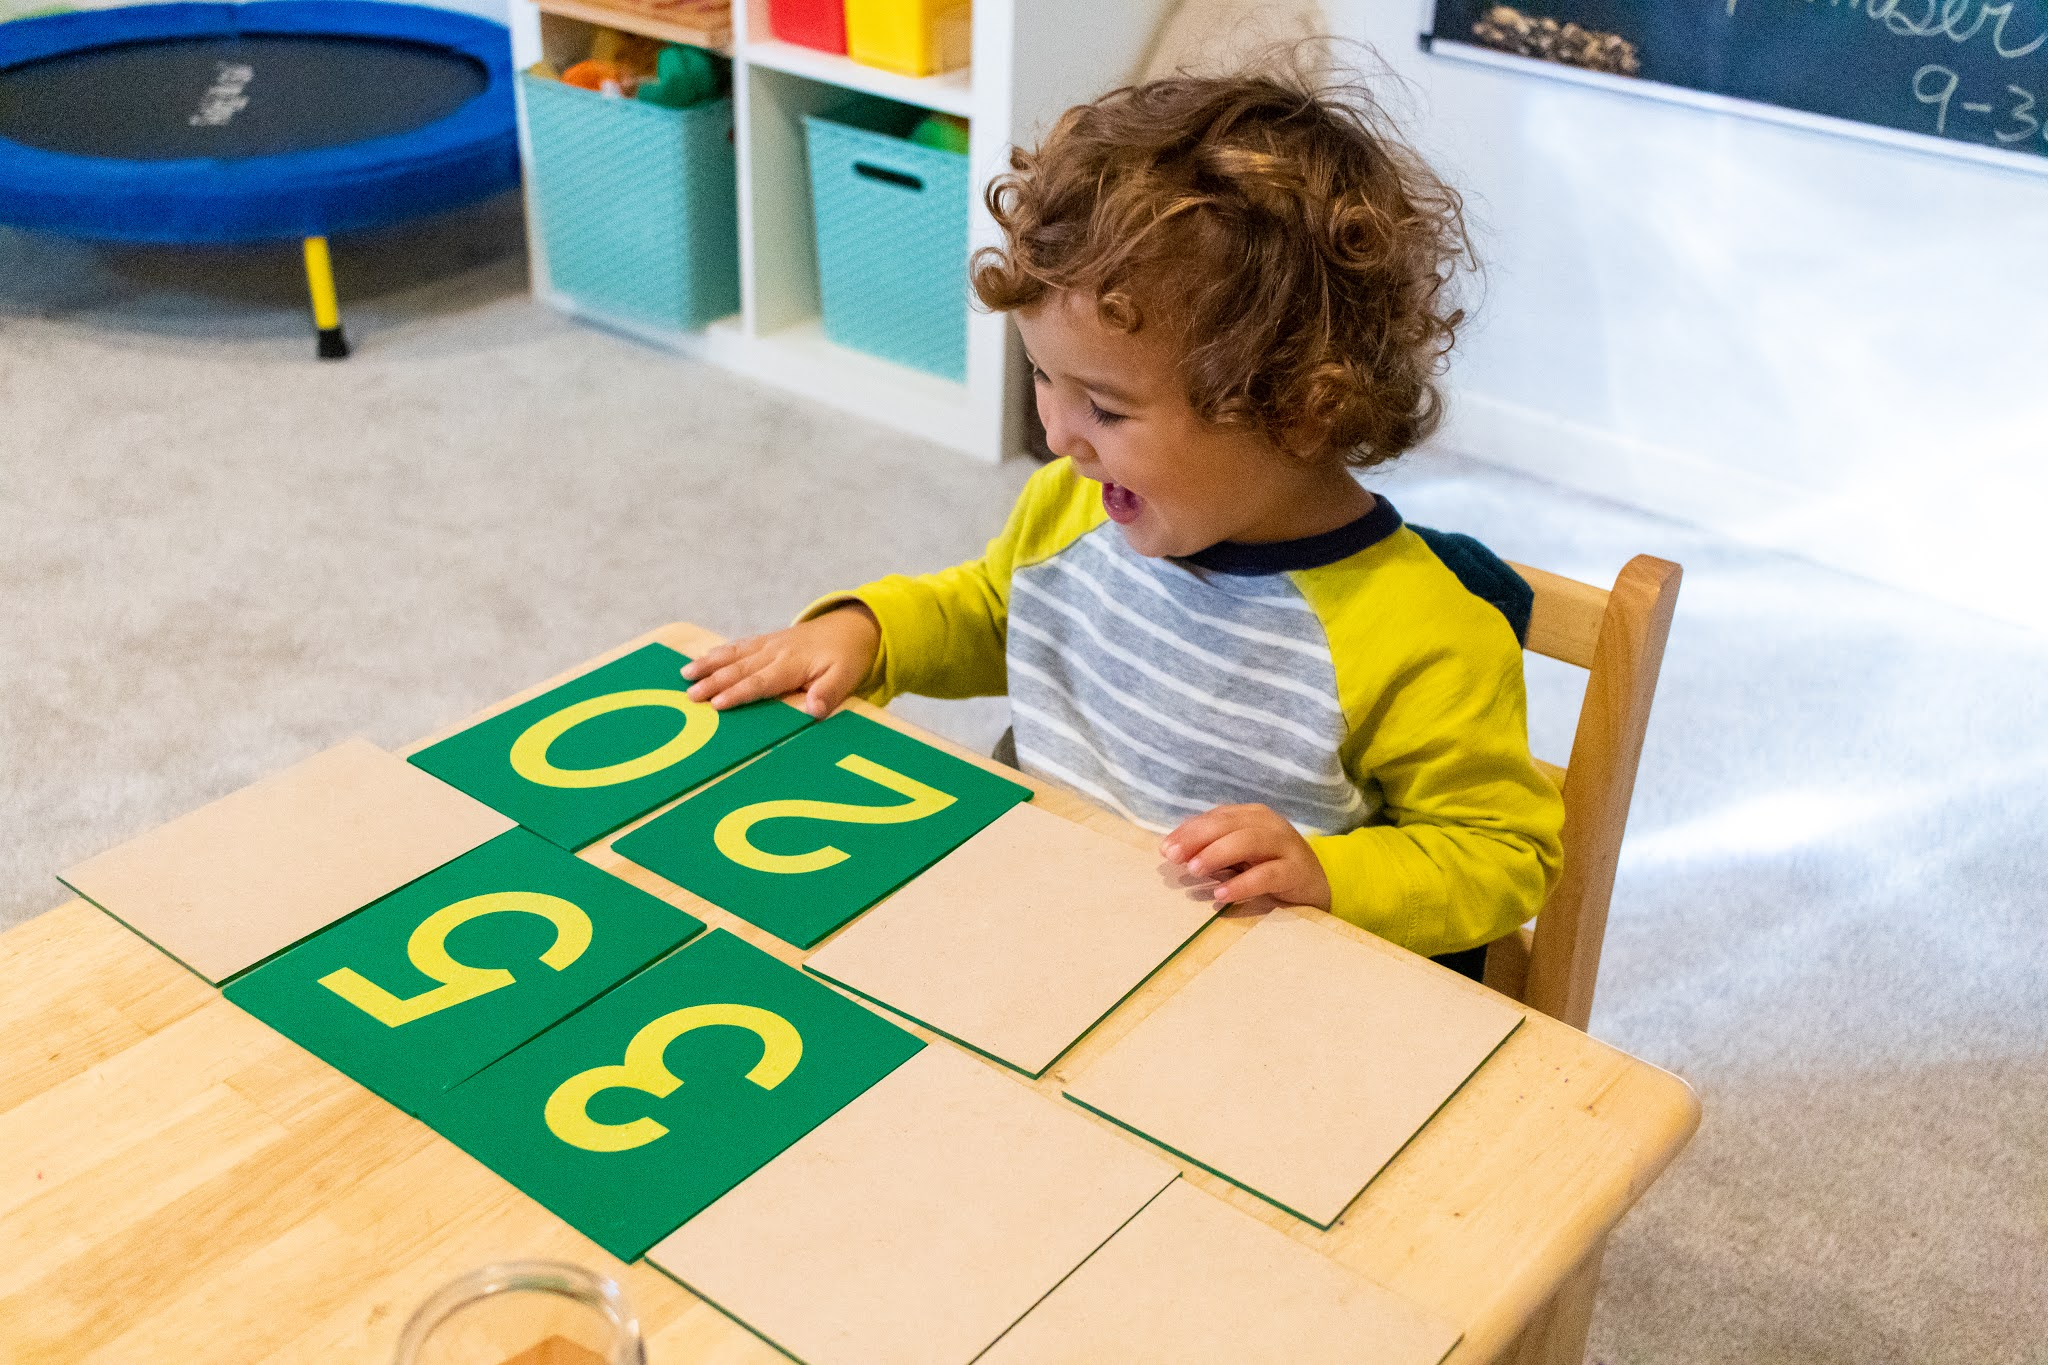 This simple Montessori friendly game is the perfect activity for Montessori letter and number learning with sandpaper materials.